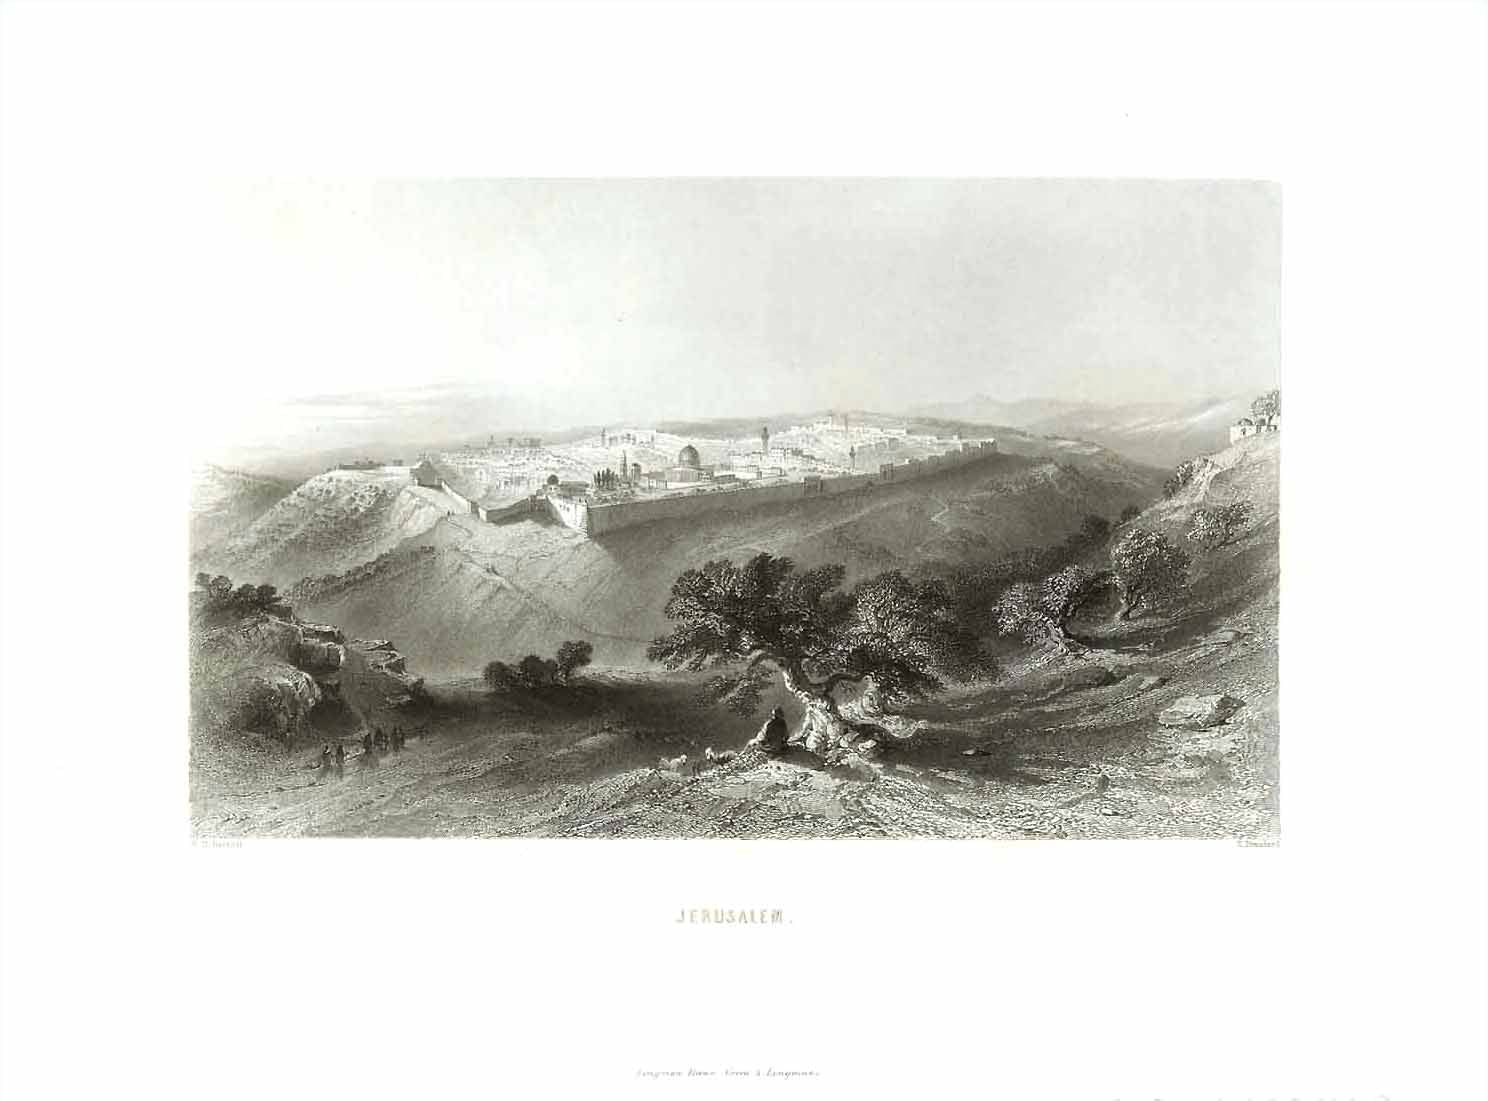 """Jerusalem""  Steel engraving by E. Brandard after W. H. Bartlett. Published 1854."